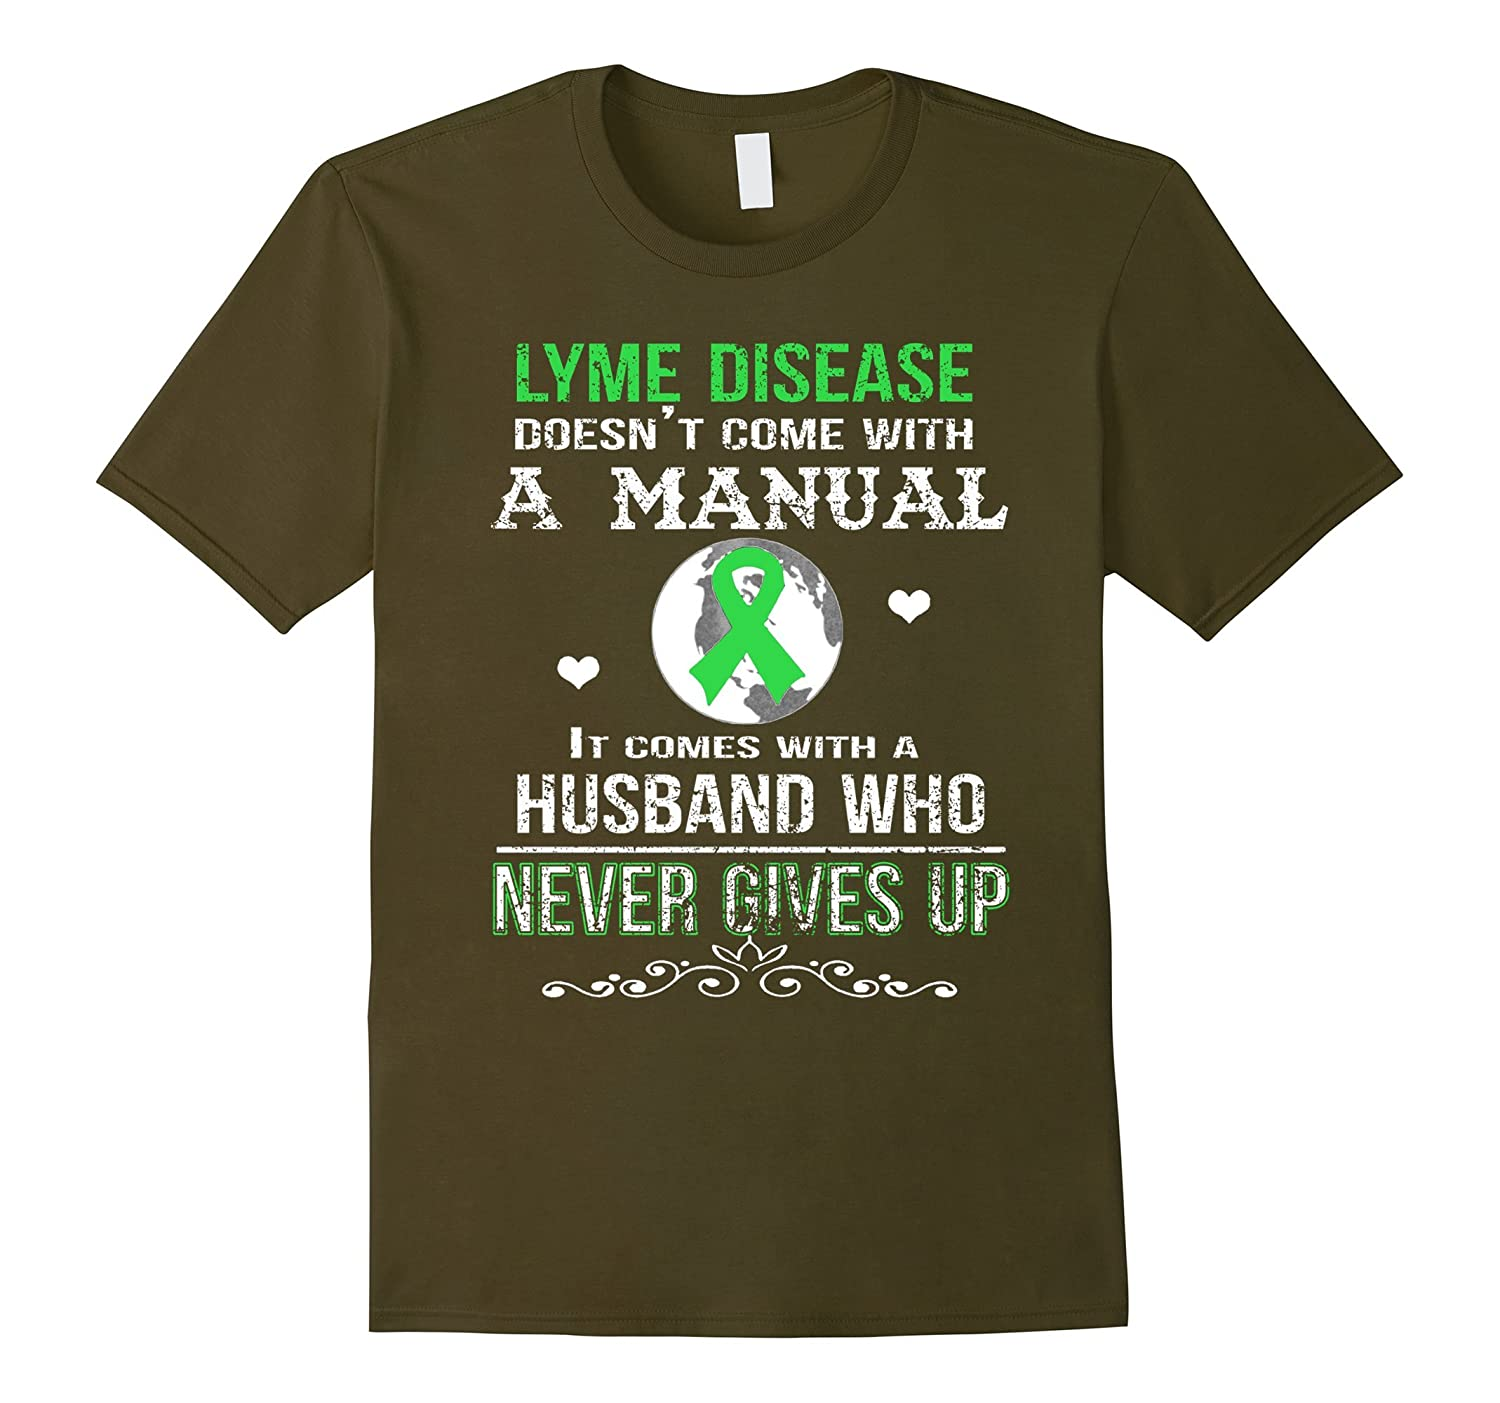 Lyme disease comes with a husband who never gives up t shirt-Vaci